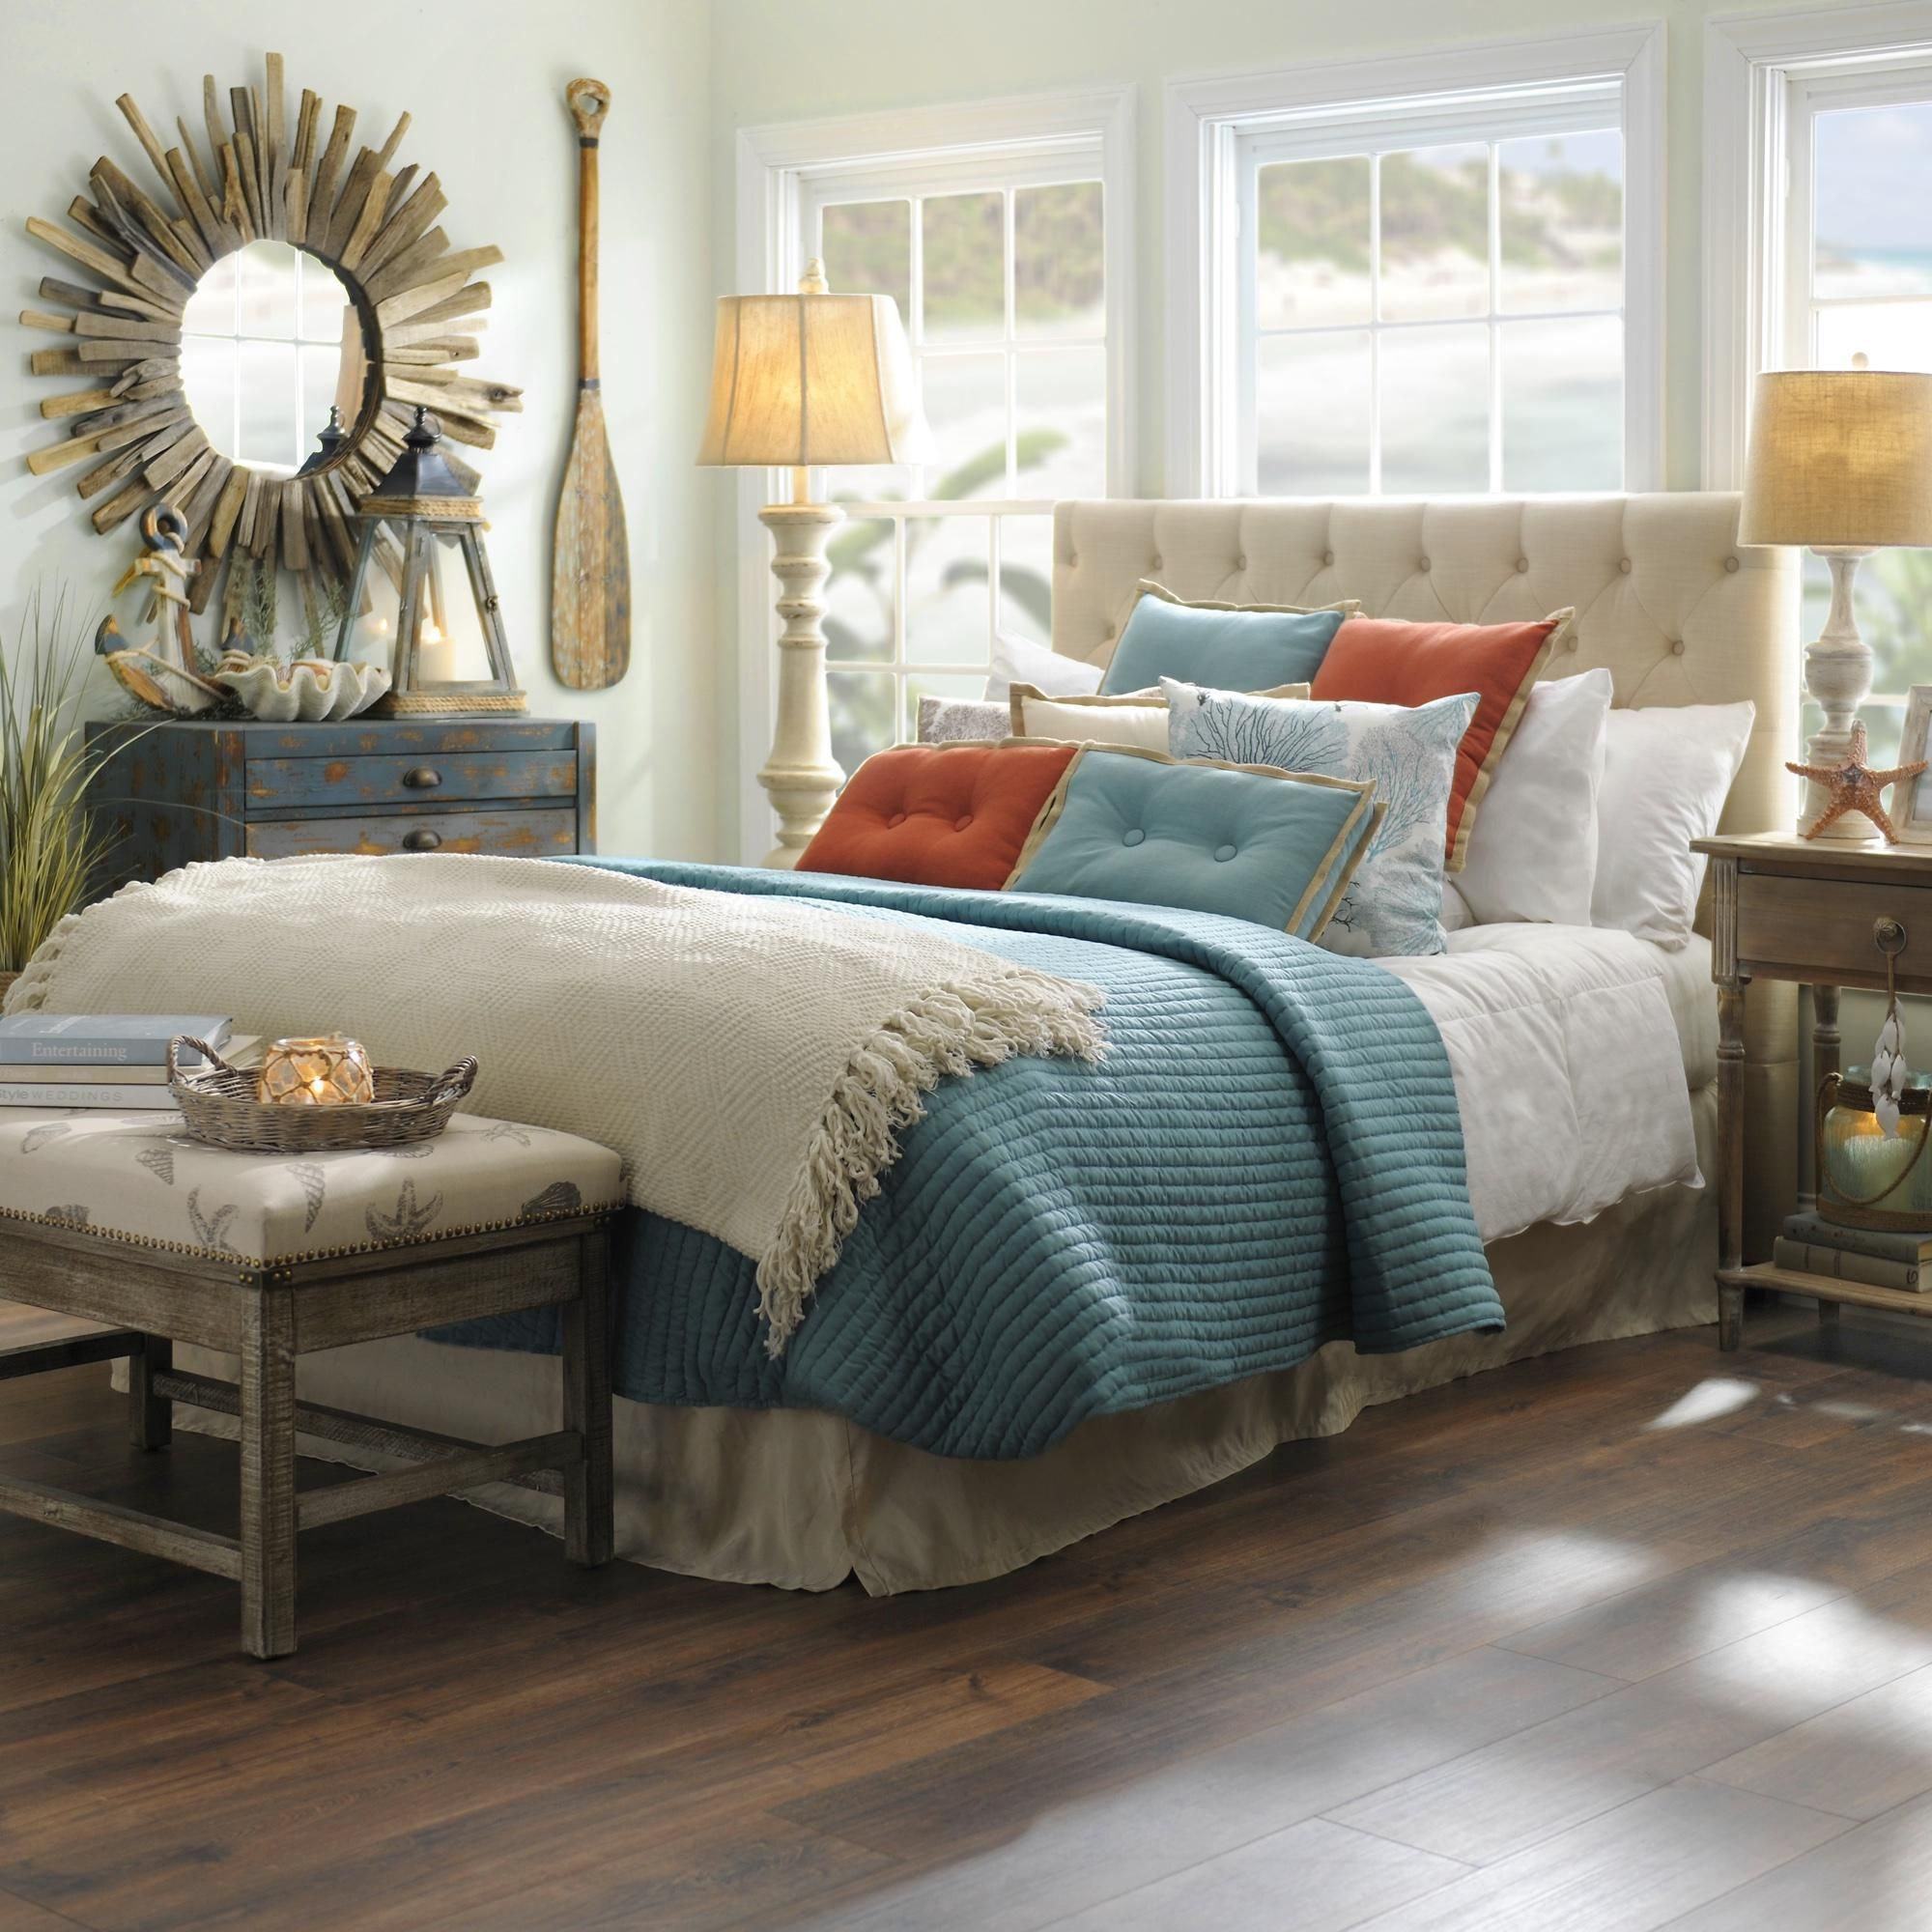 Coastal Style Bedroom Coastal Cottage Collection. With